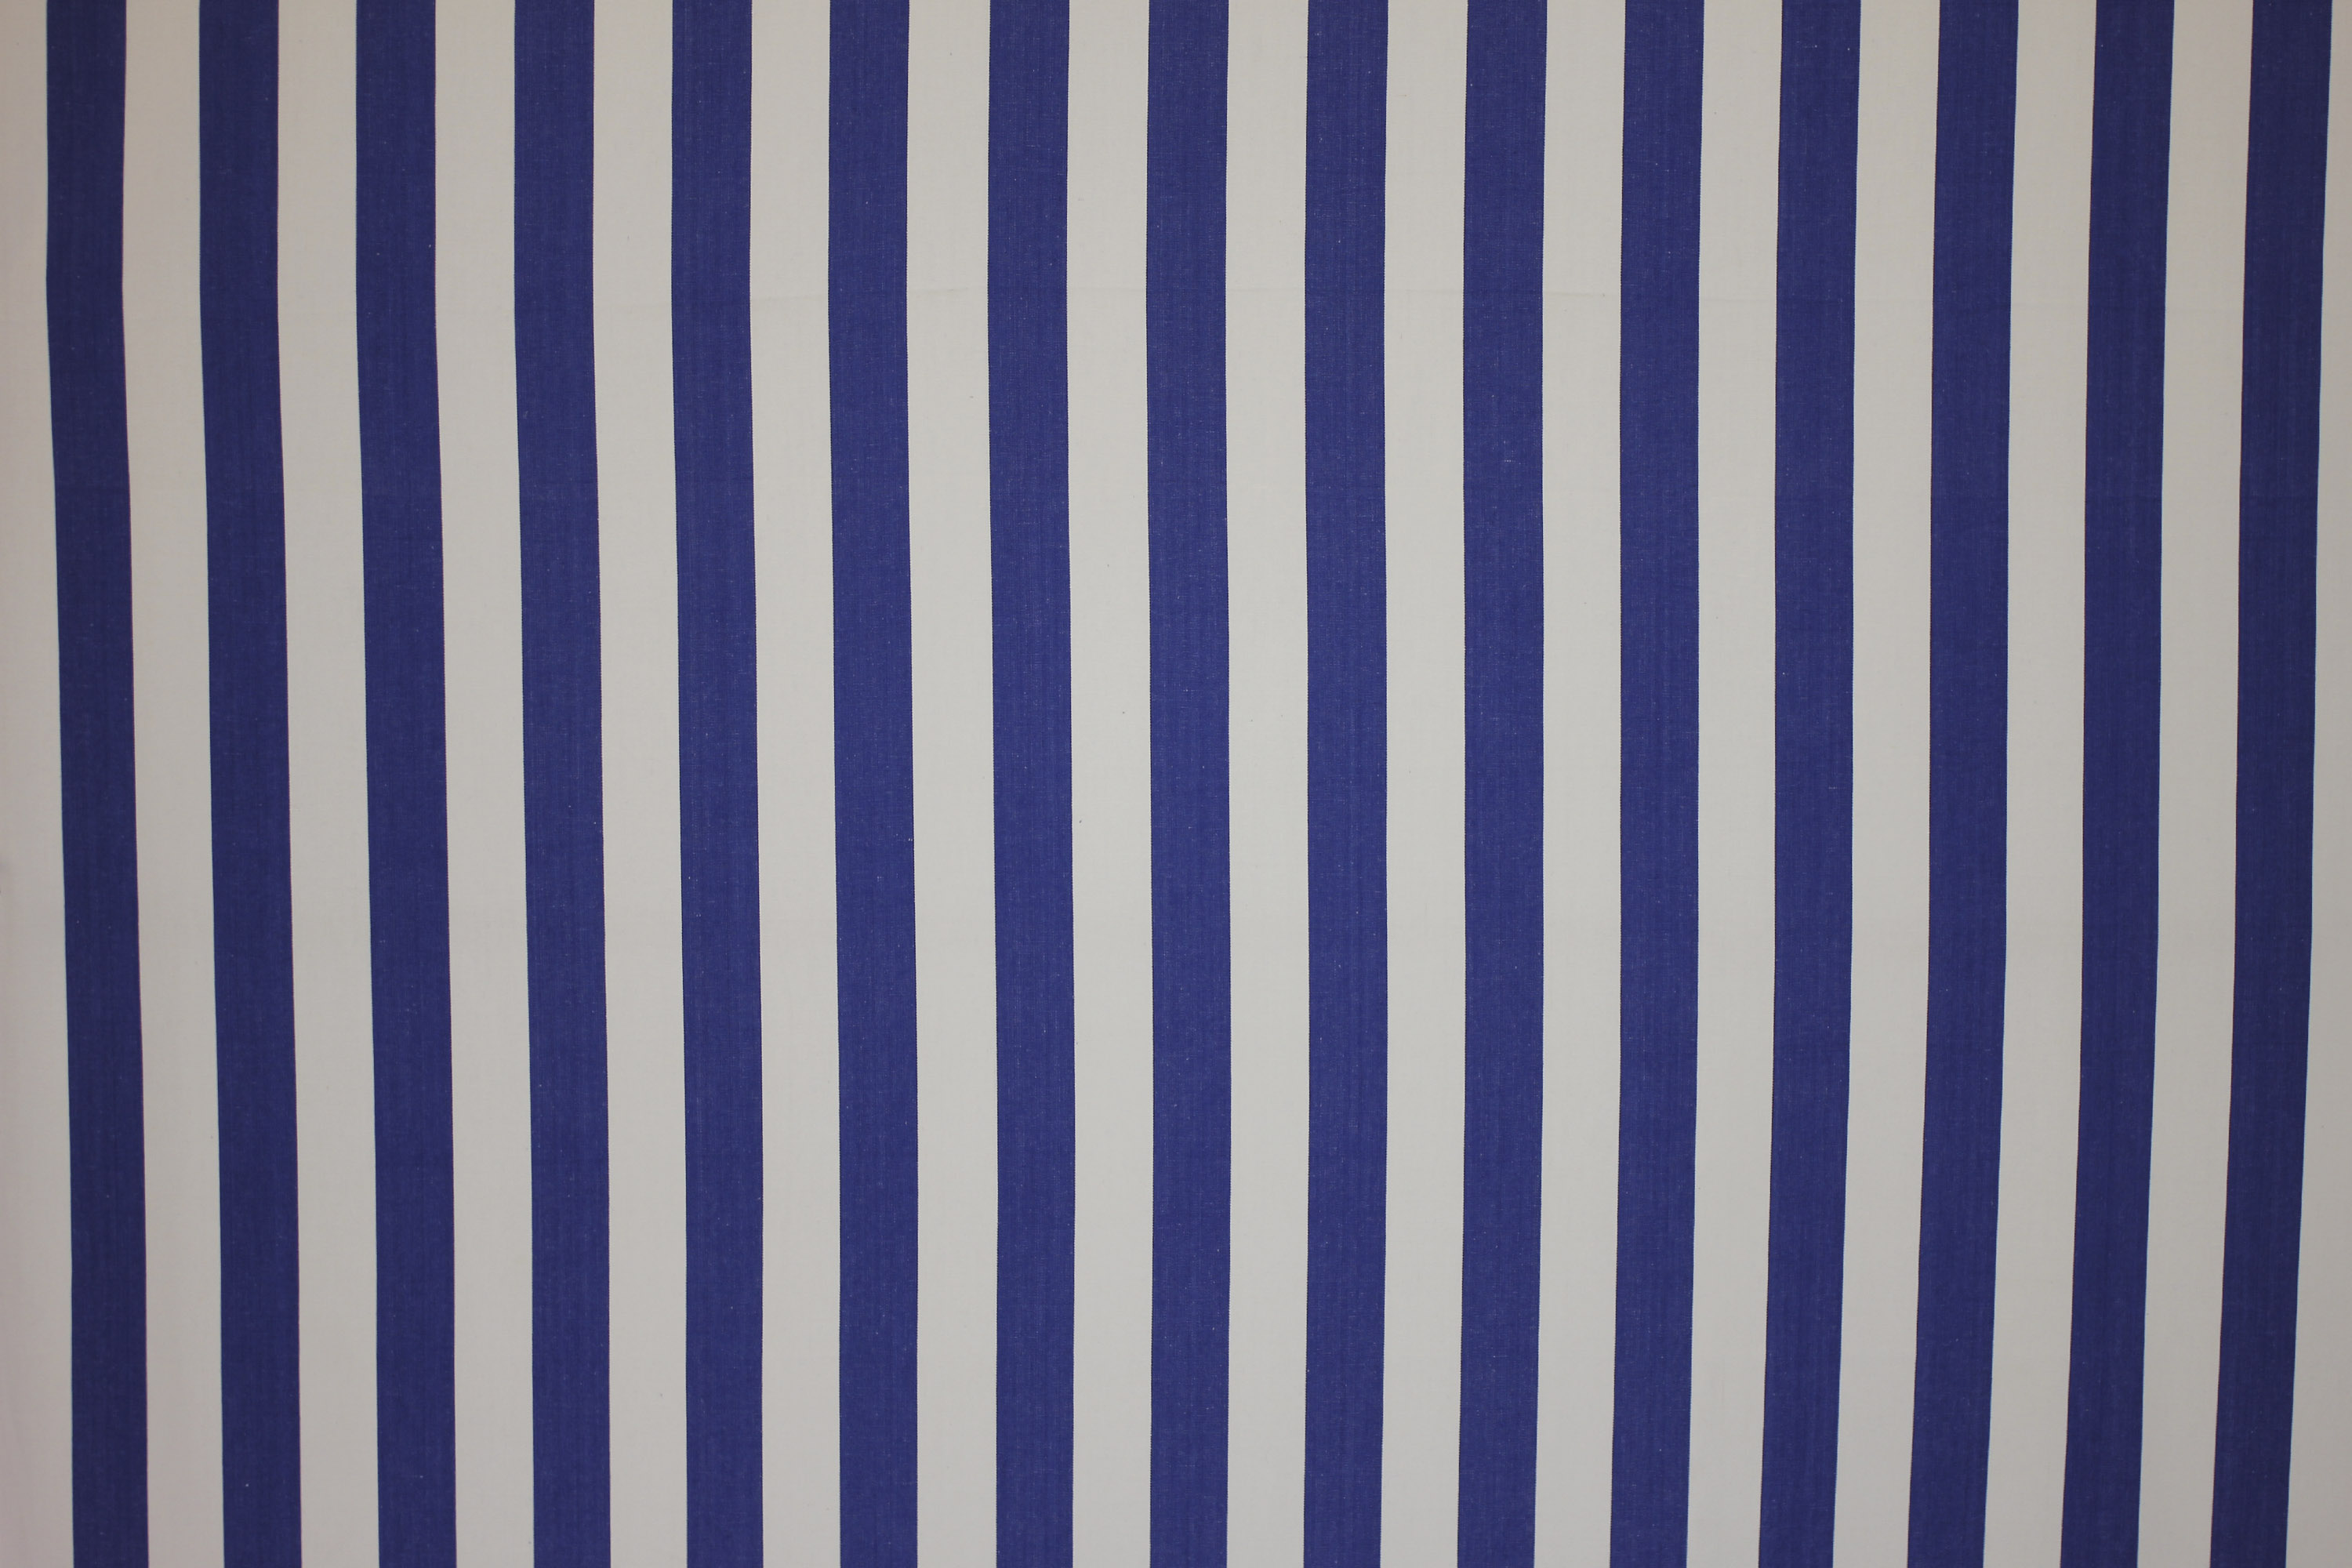 Beach Windbreaks | The Stripes Company United States